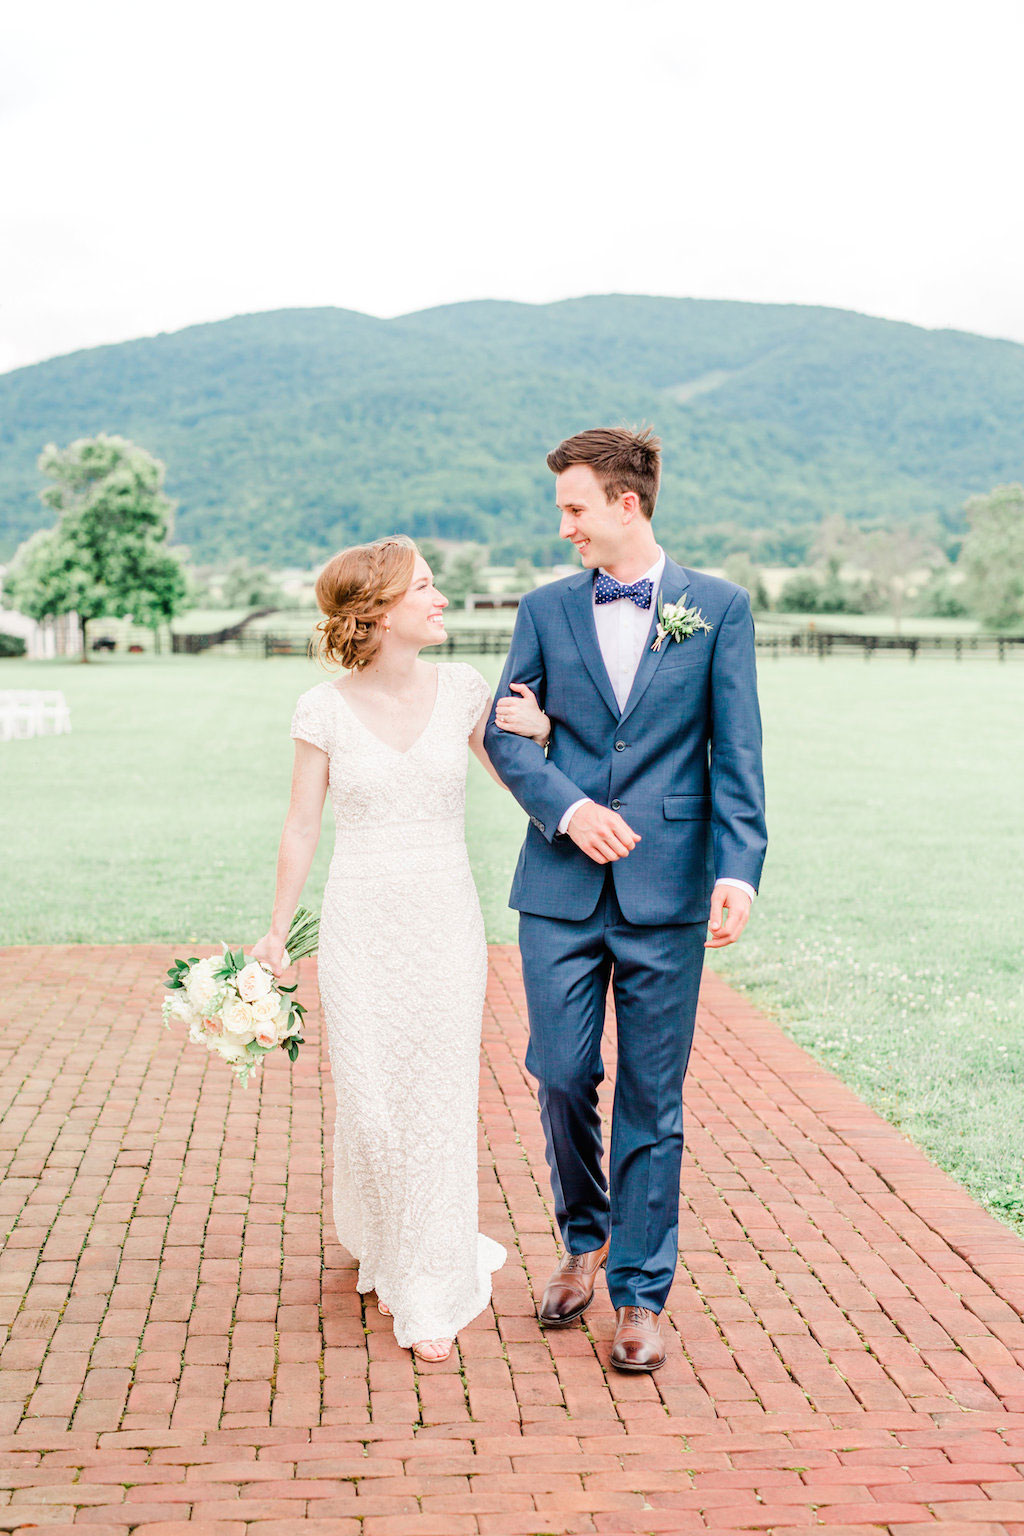 8-16-16-blue-virginia-vineyard-wedding-6